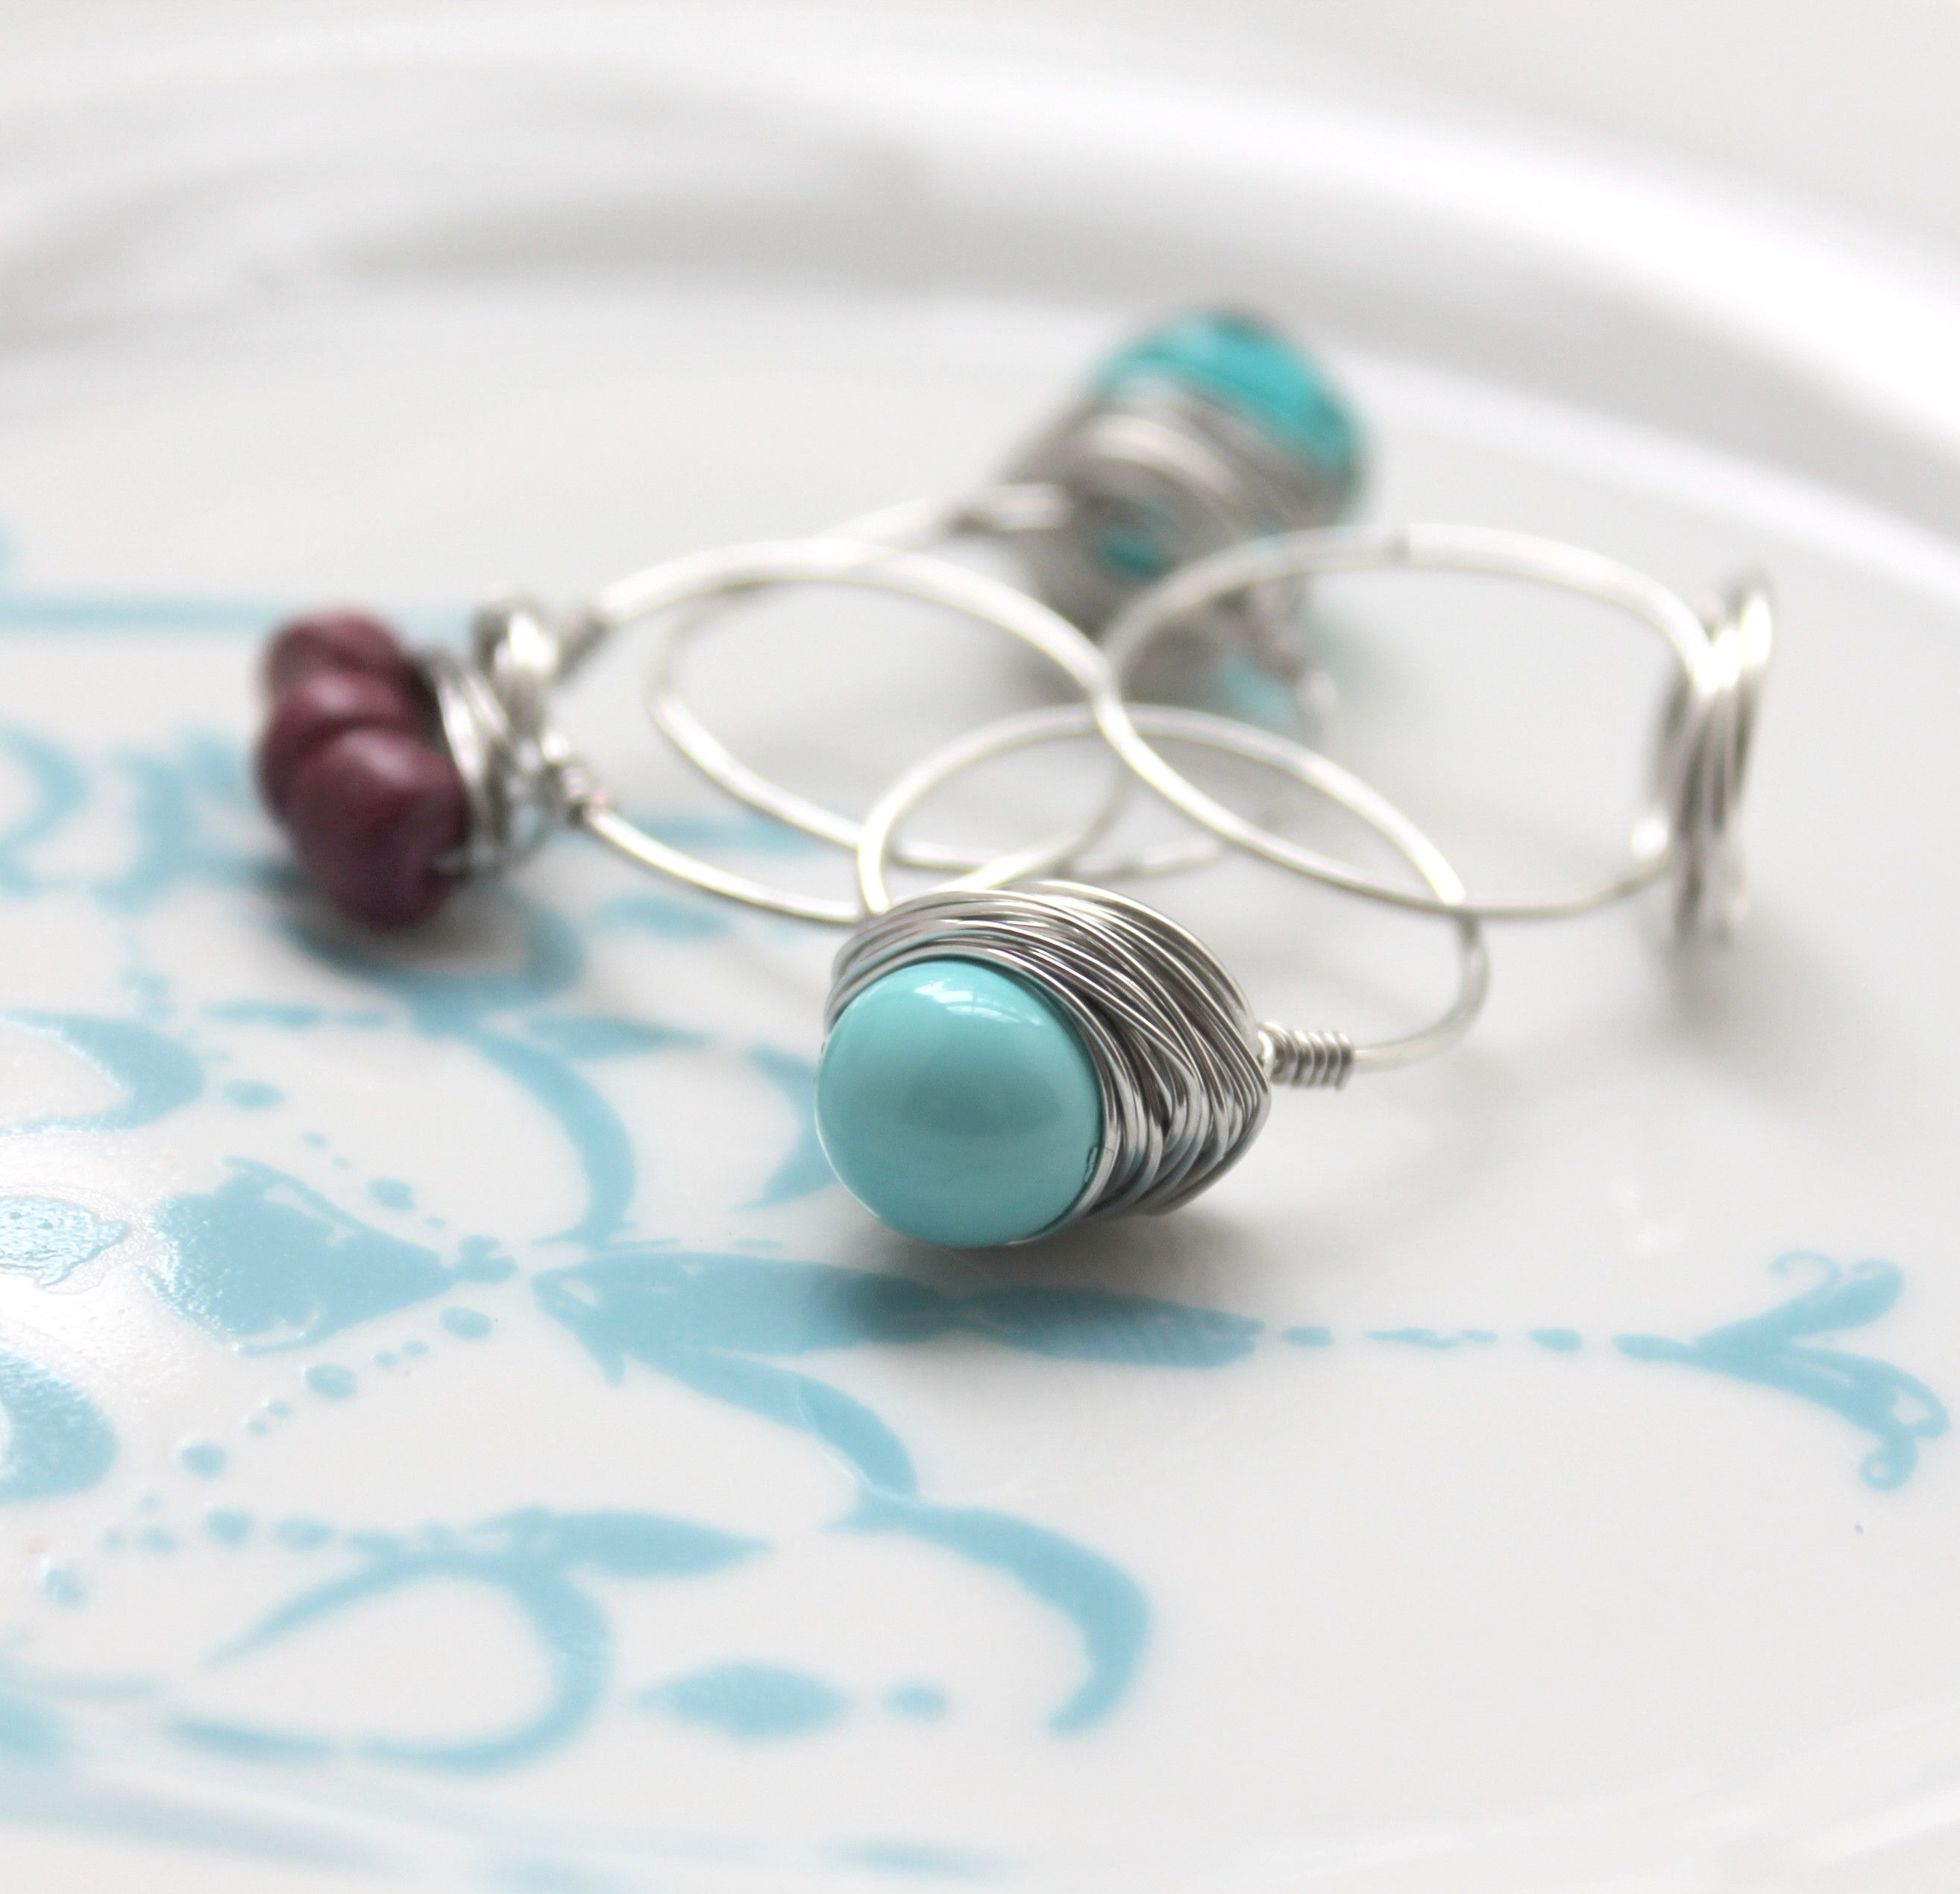 DIY Wire Wrapped Ring | Craft Ideas | Pinterest | Wire wrapping ...